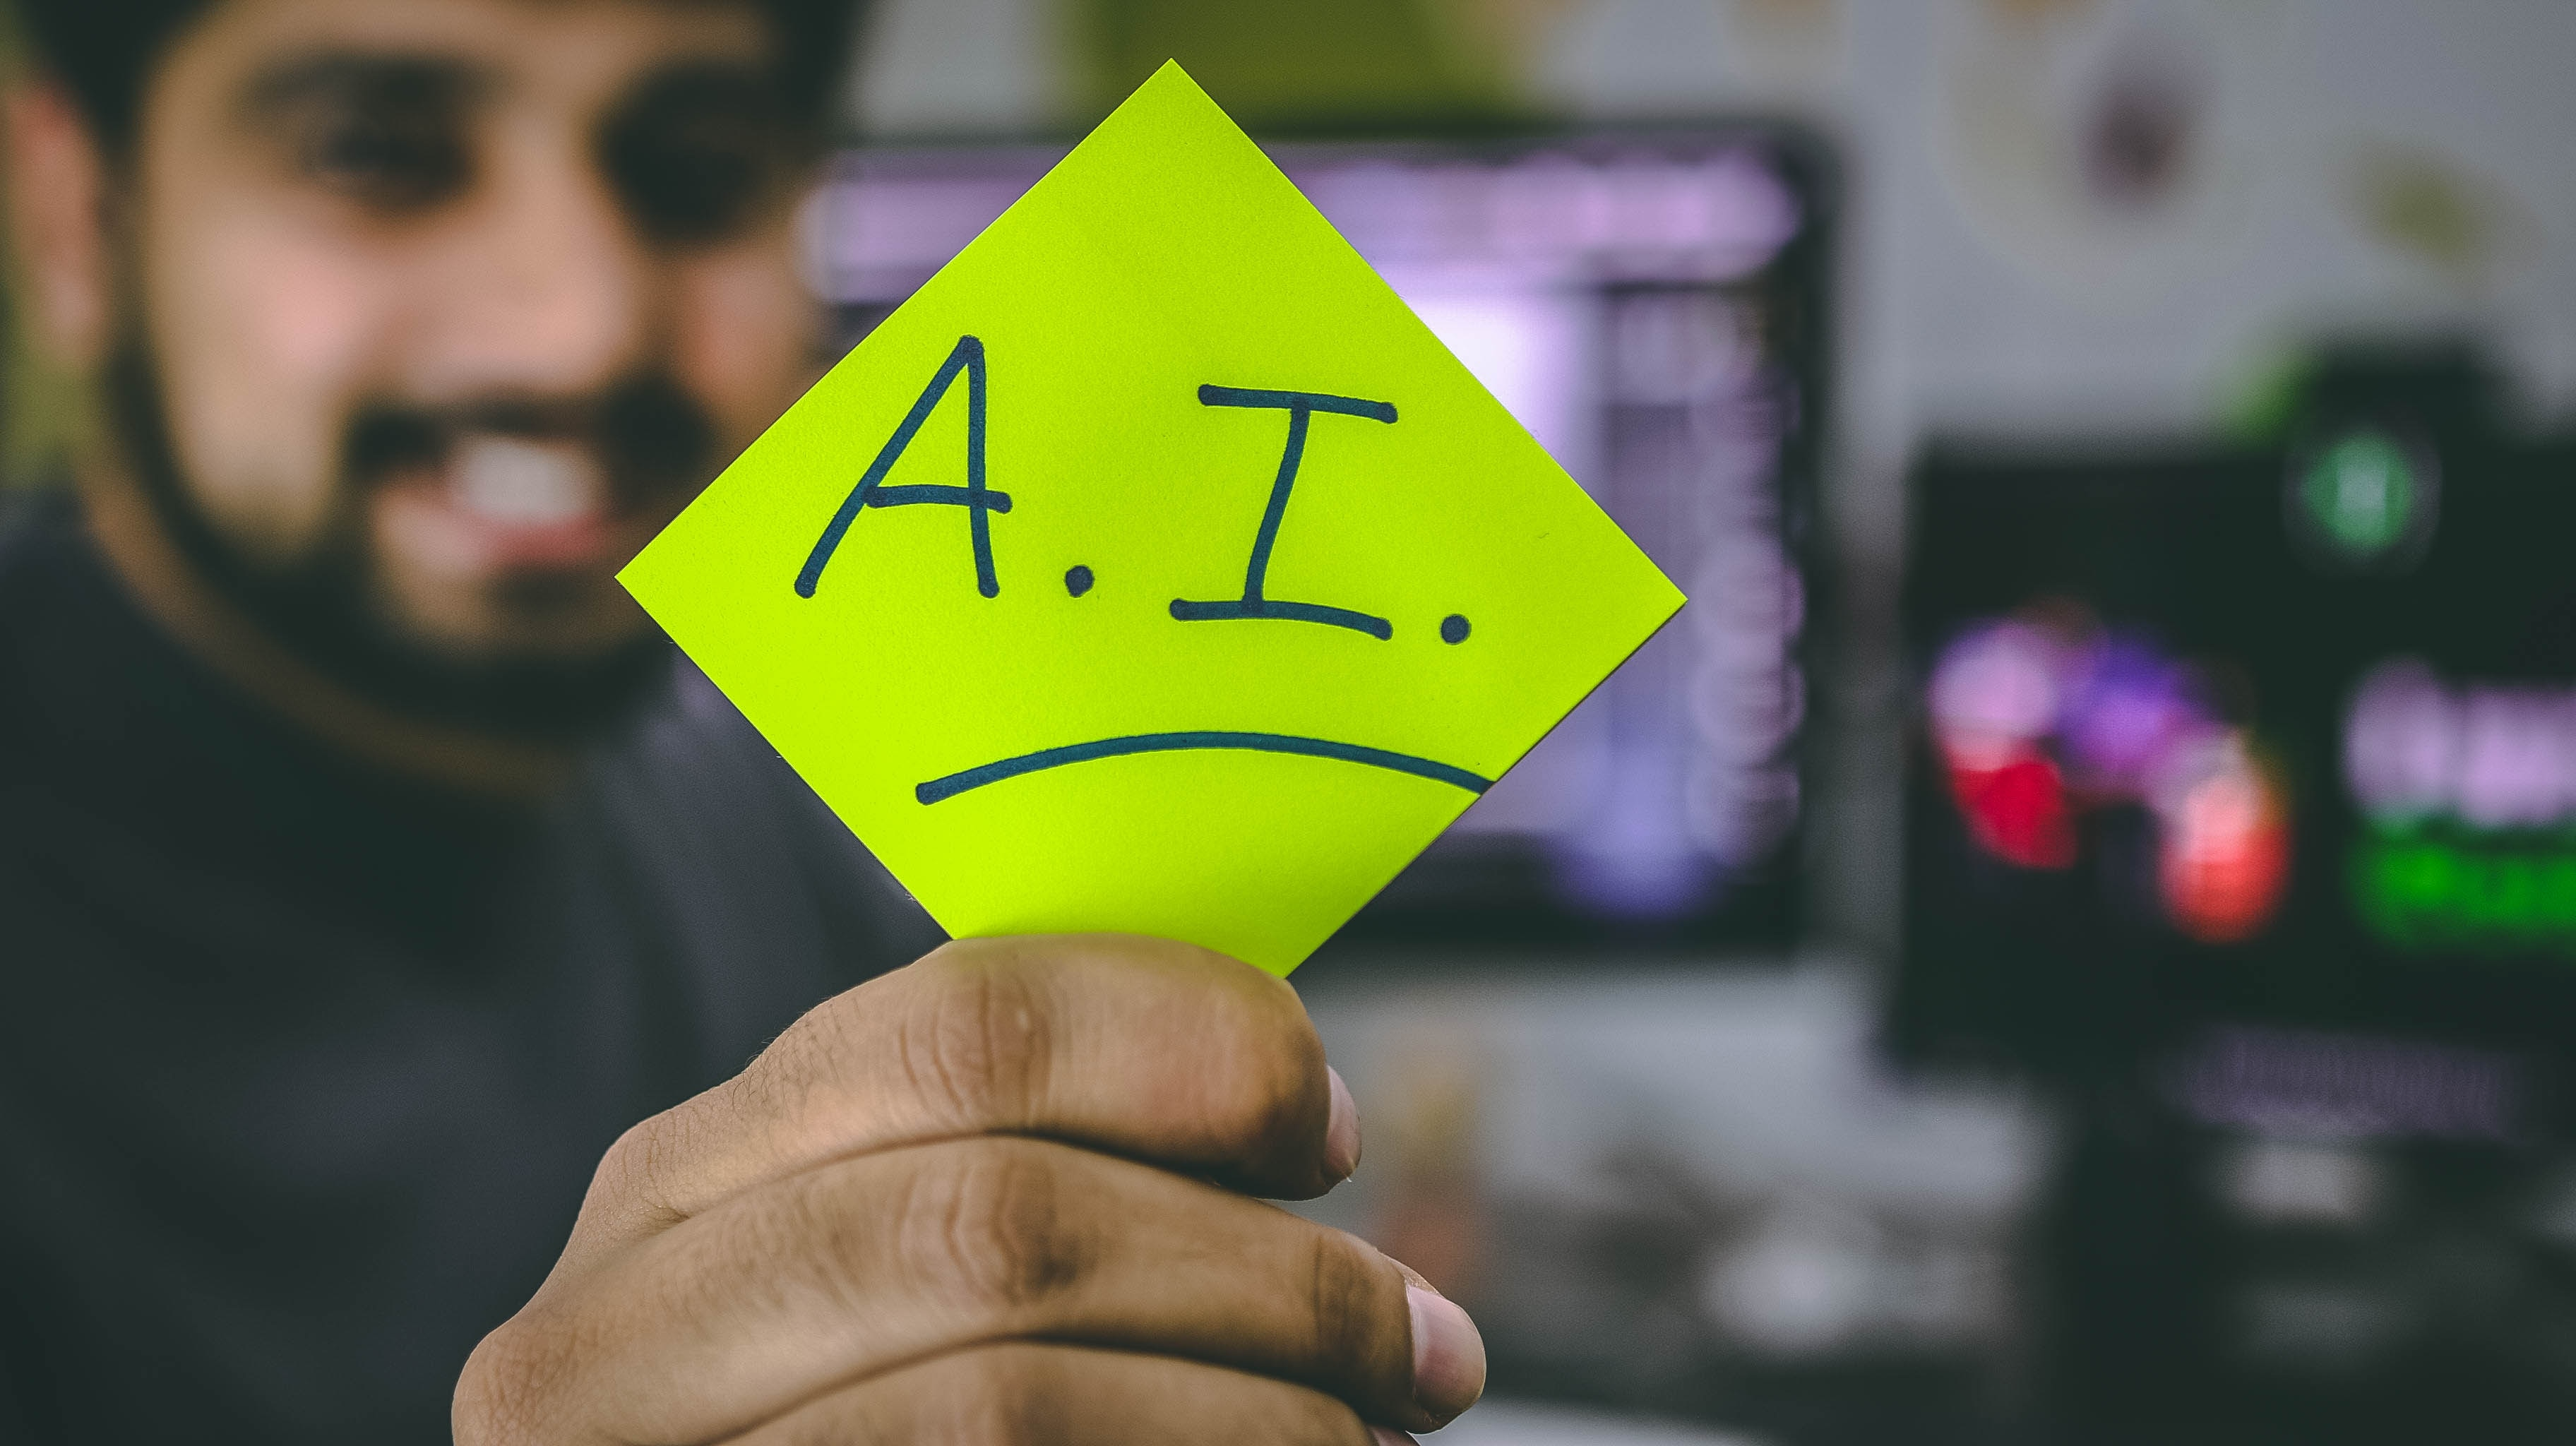 chances are, AI has had an impact on your job hunt